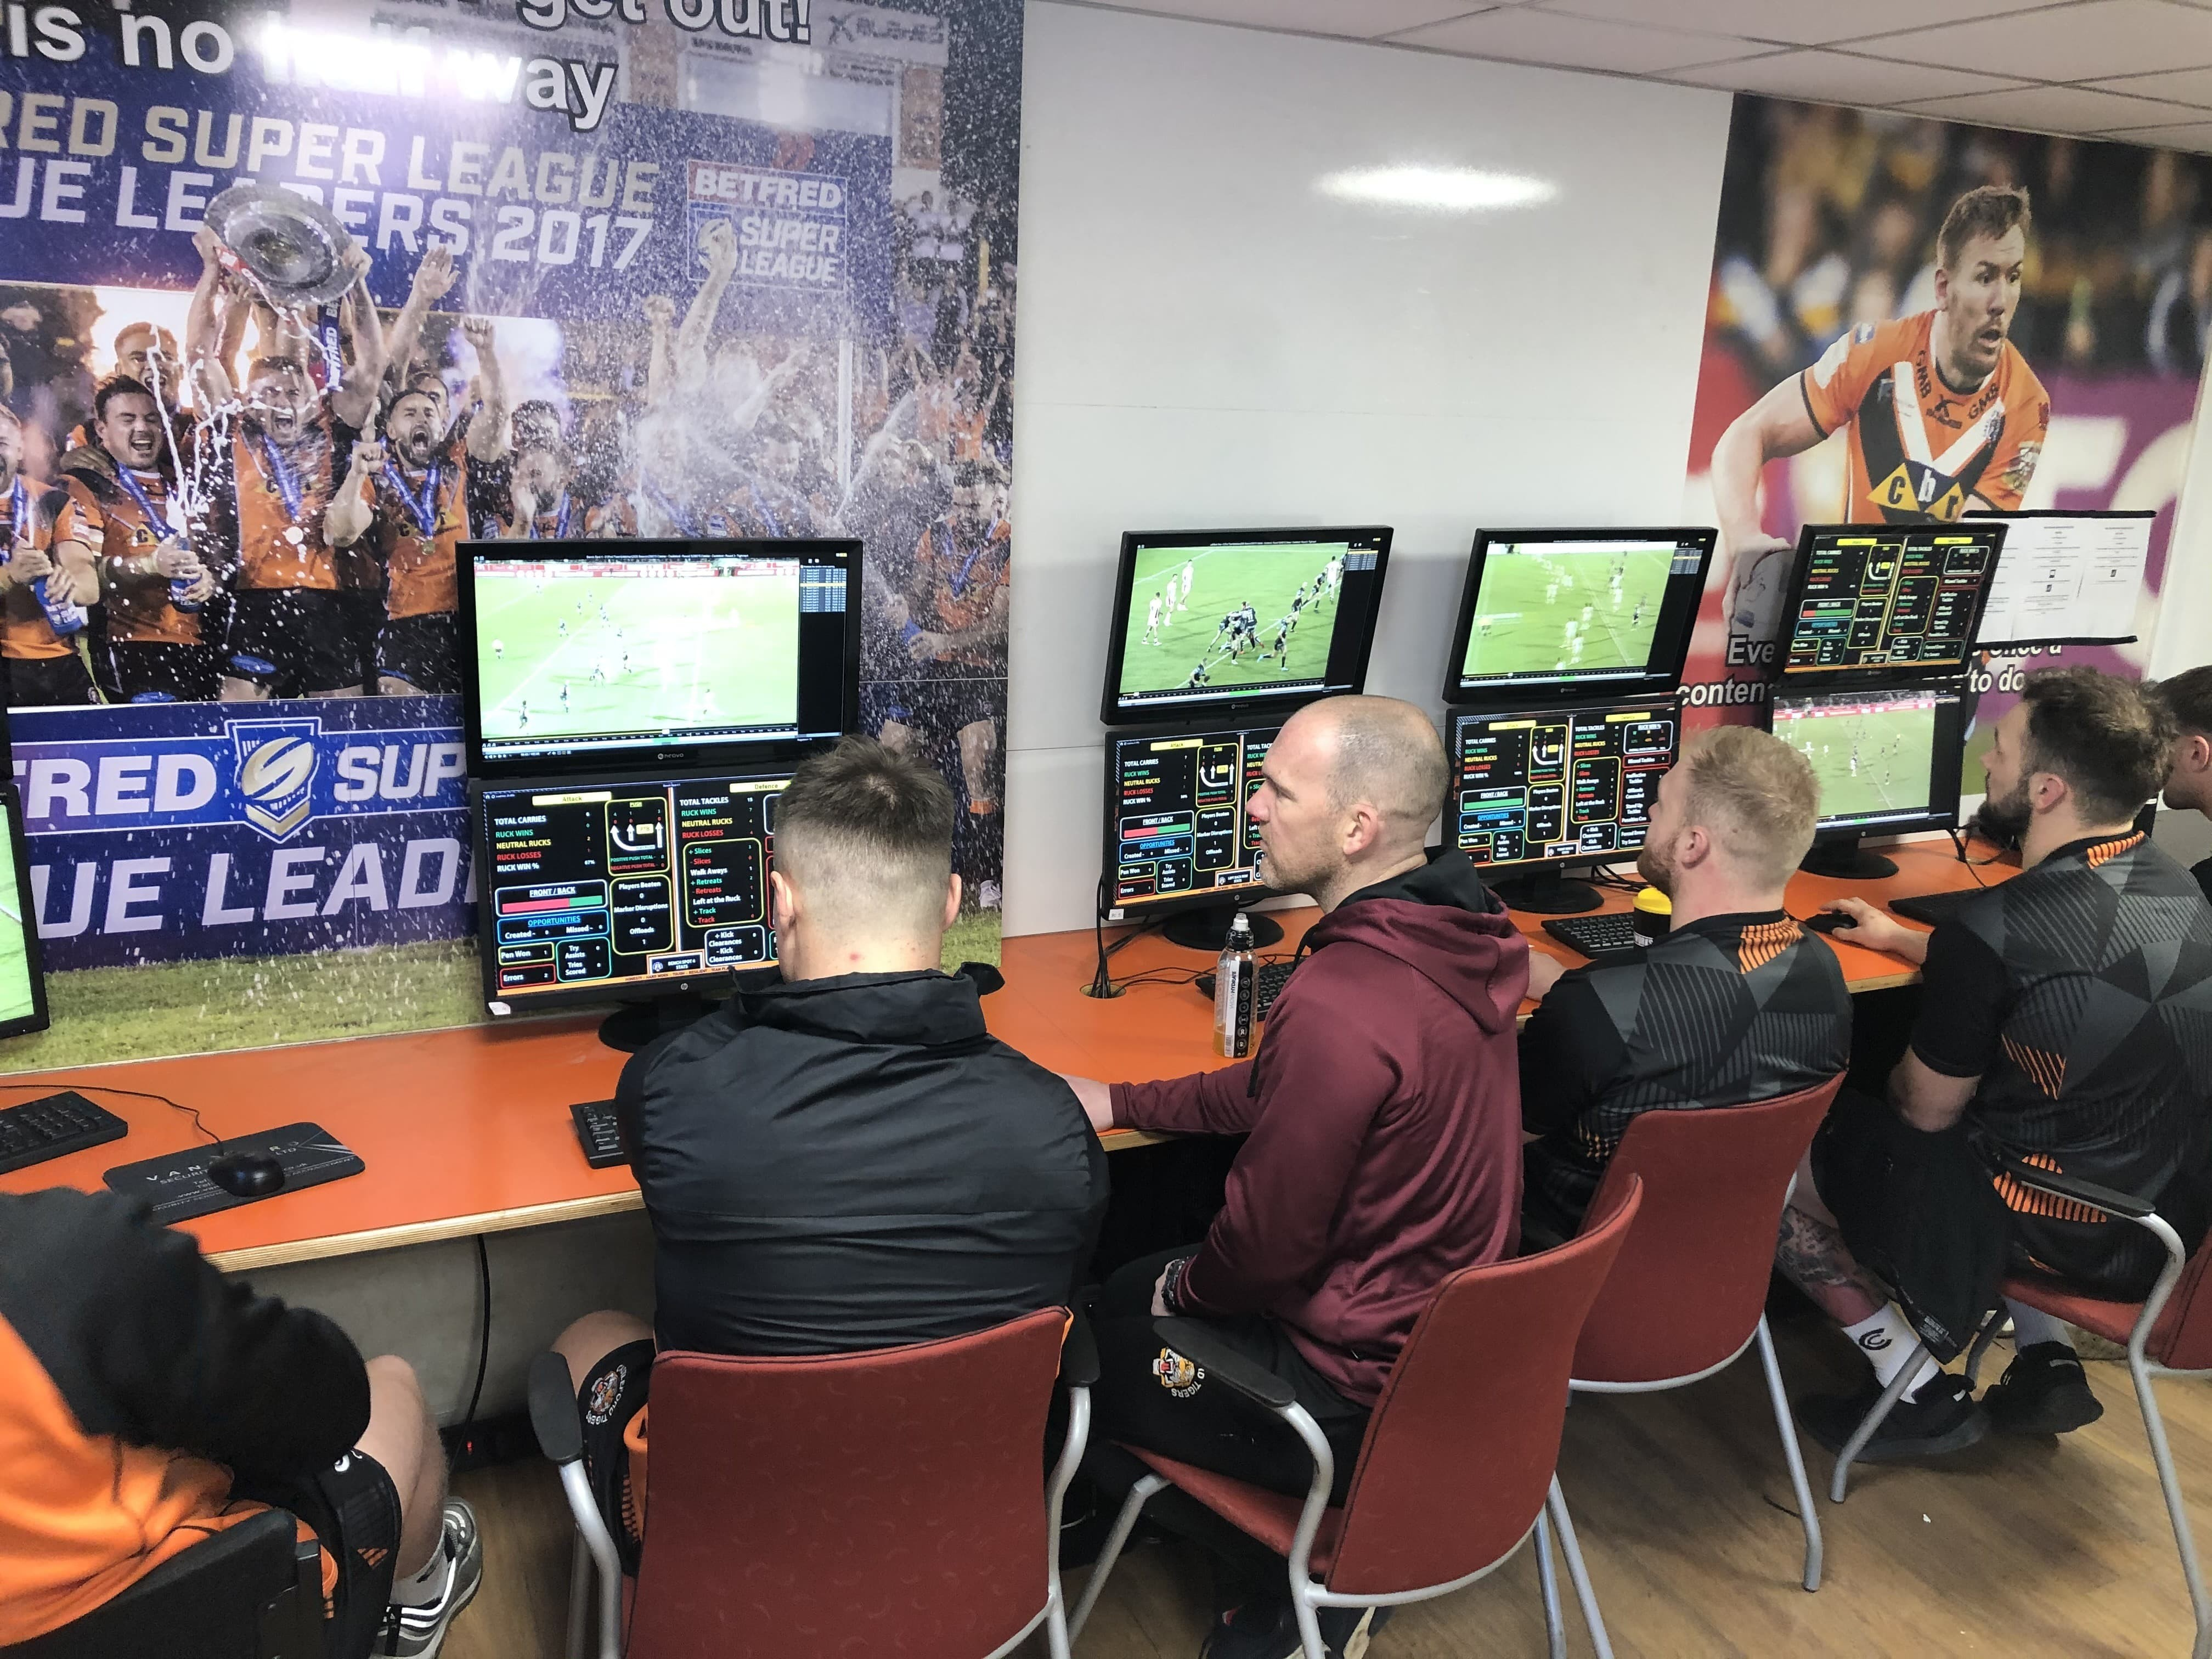 Multiple Screens Sports Video Analysis